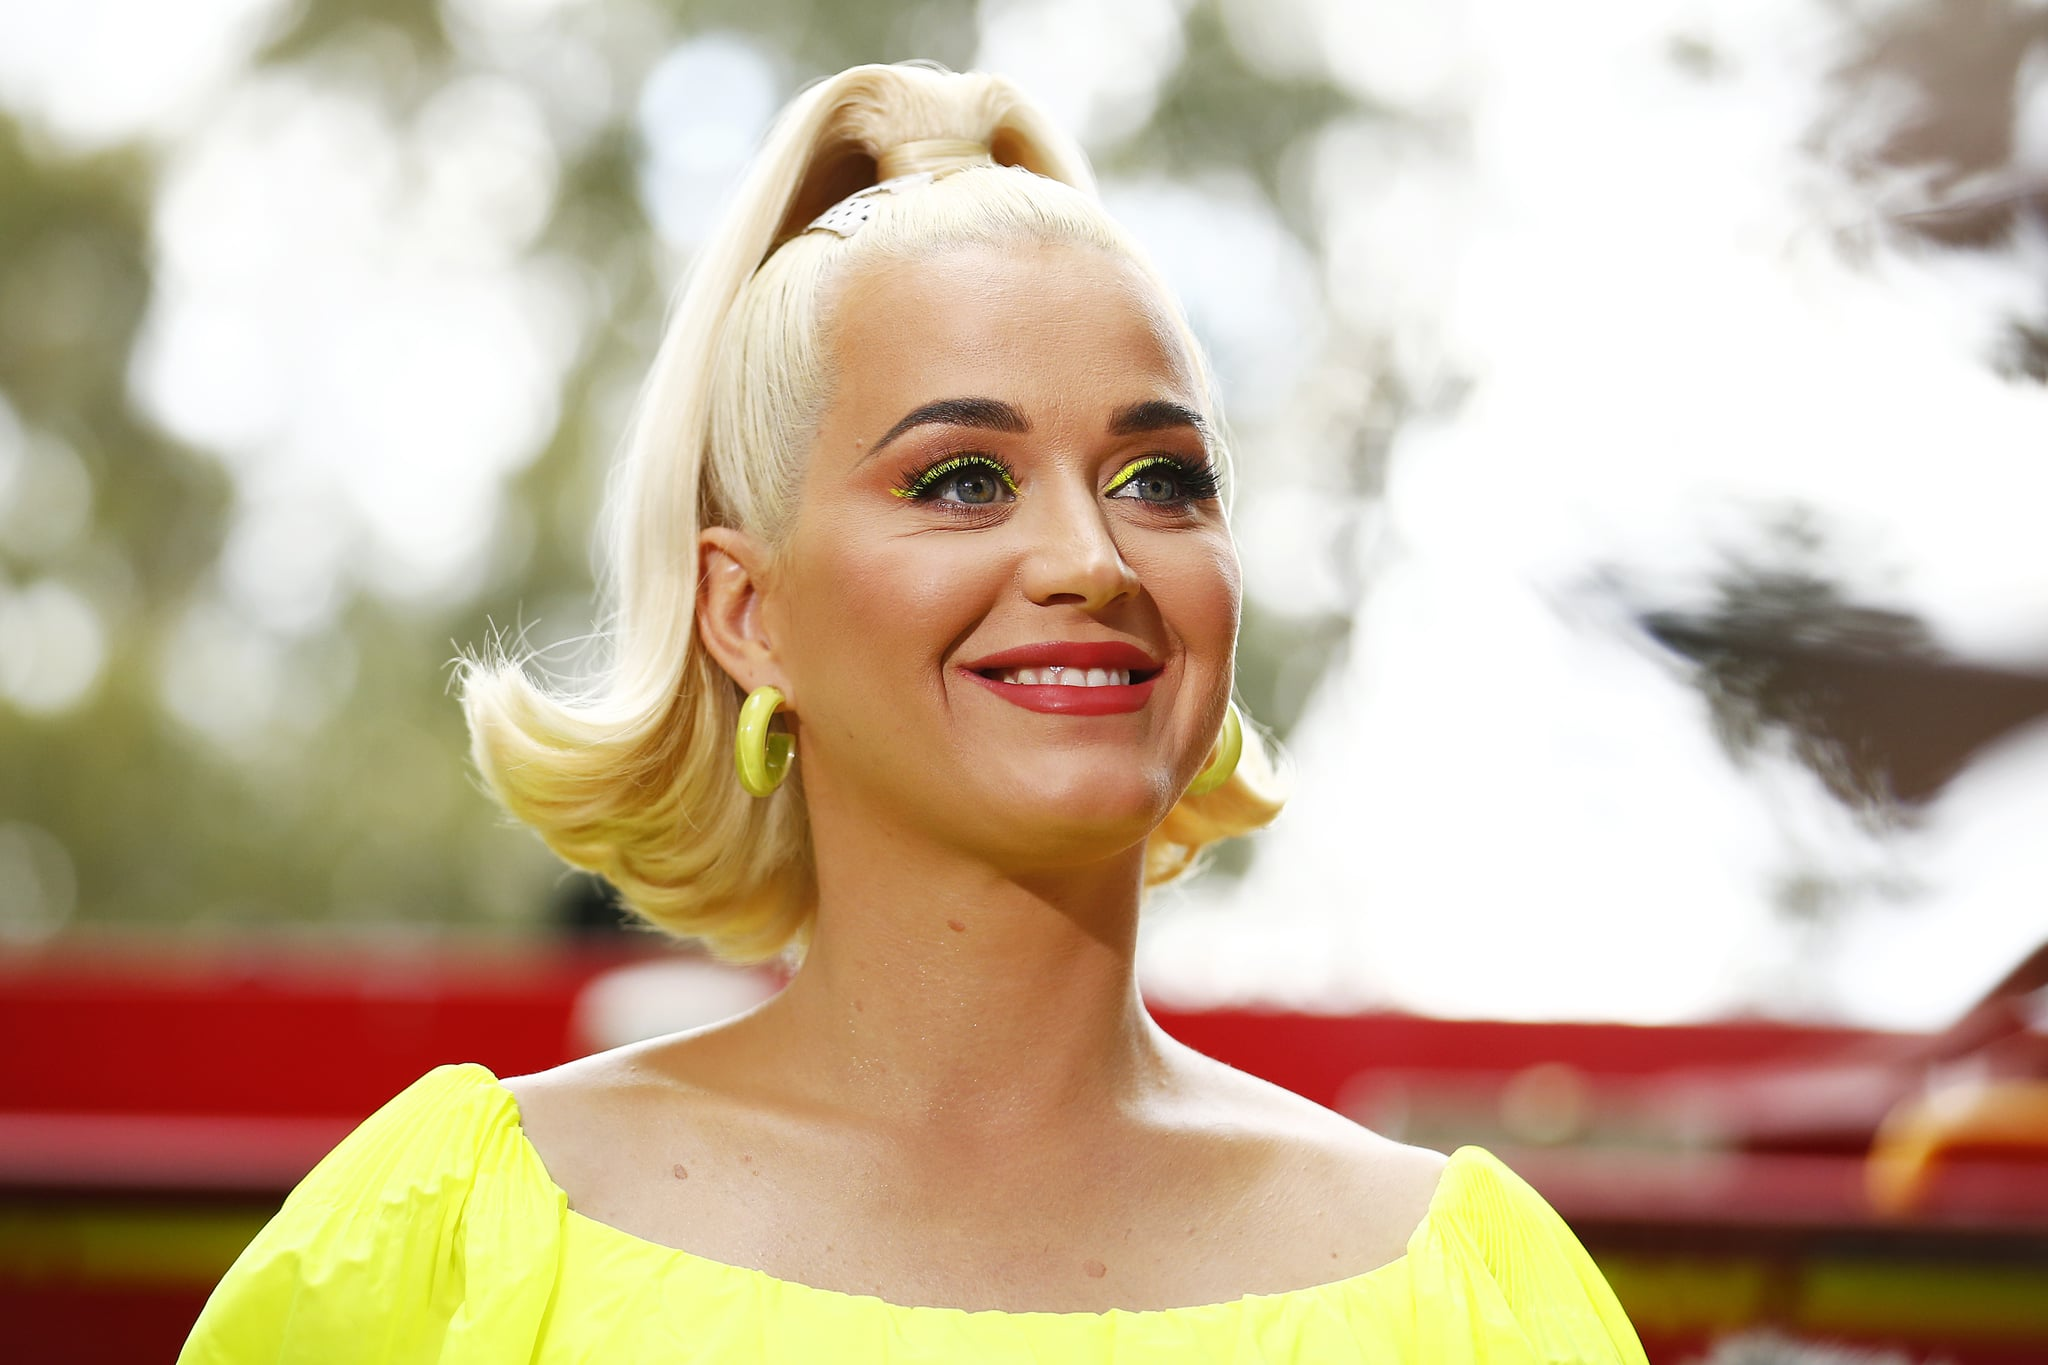 BRIGHT, AUSTRALIA - MARCH 11: Katy Perry speaks to media on March 11, 2020 in Bright, Australia. The free Fight On concert was held for for firefighters and communities recently affected by the devastating bushfires in Victoria. (Photo by Daniel Pockett/Getty Images)